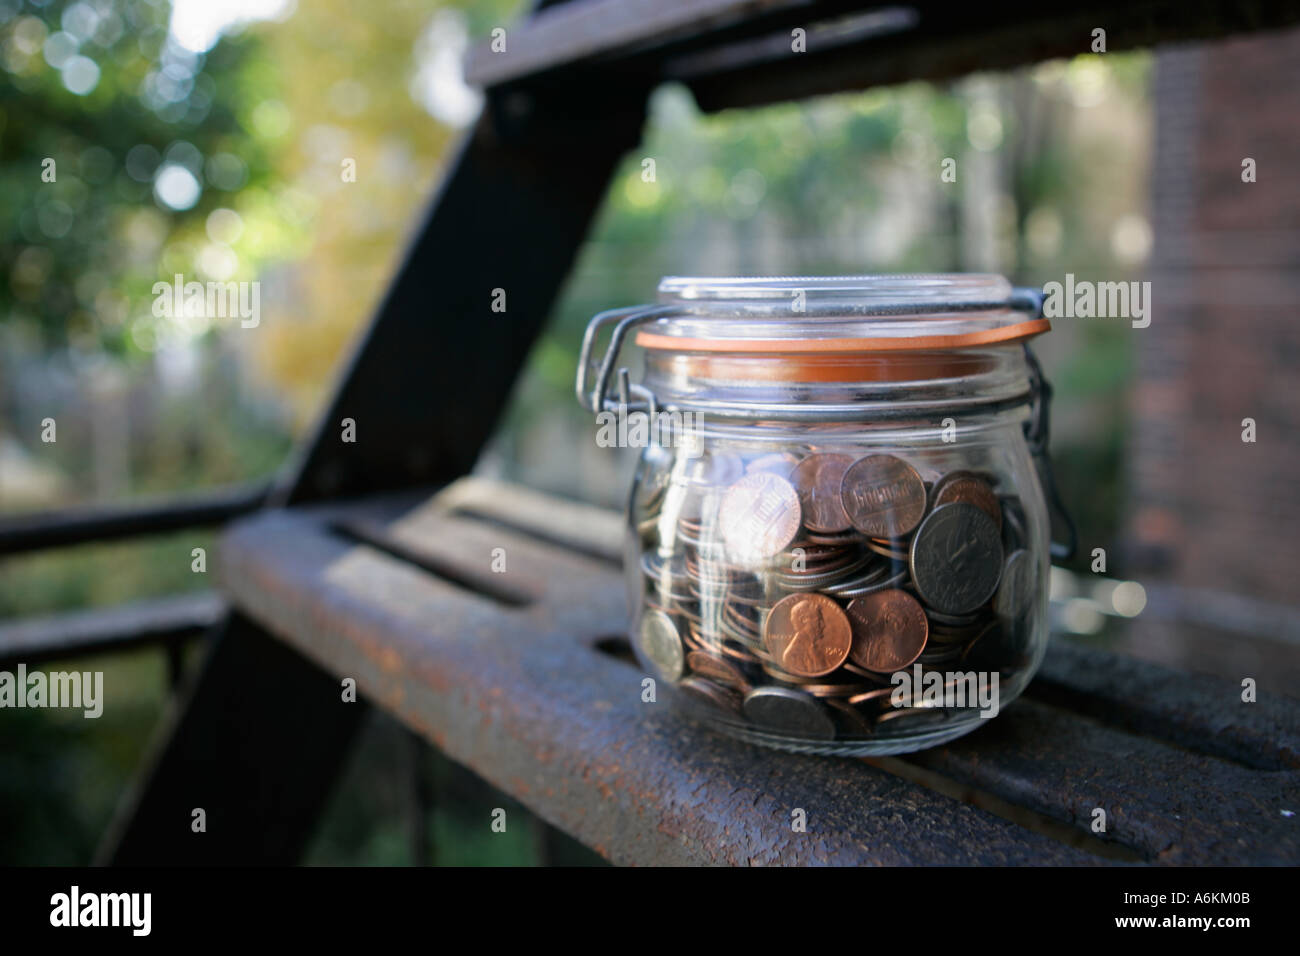 Jar filled with coins on fire steps close up Stock Photo